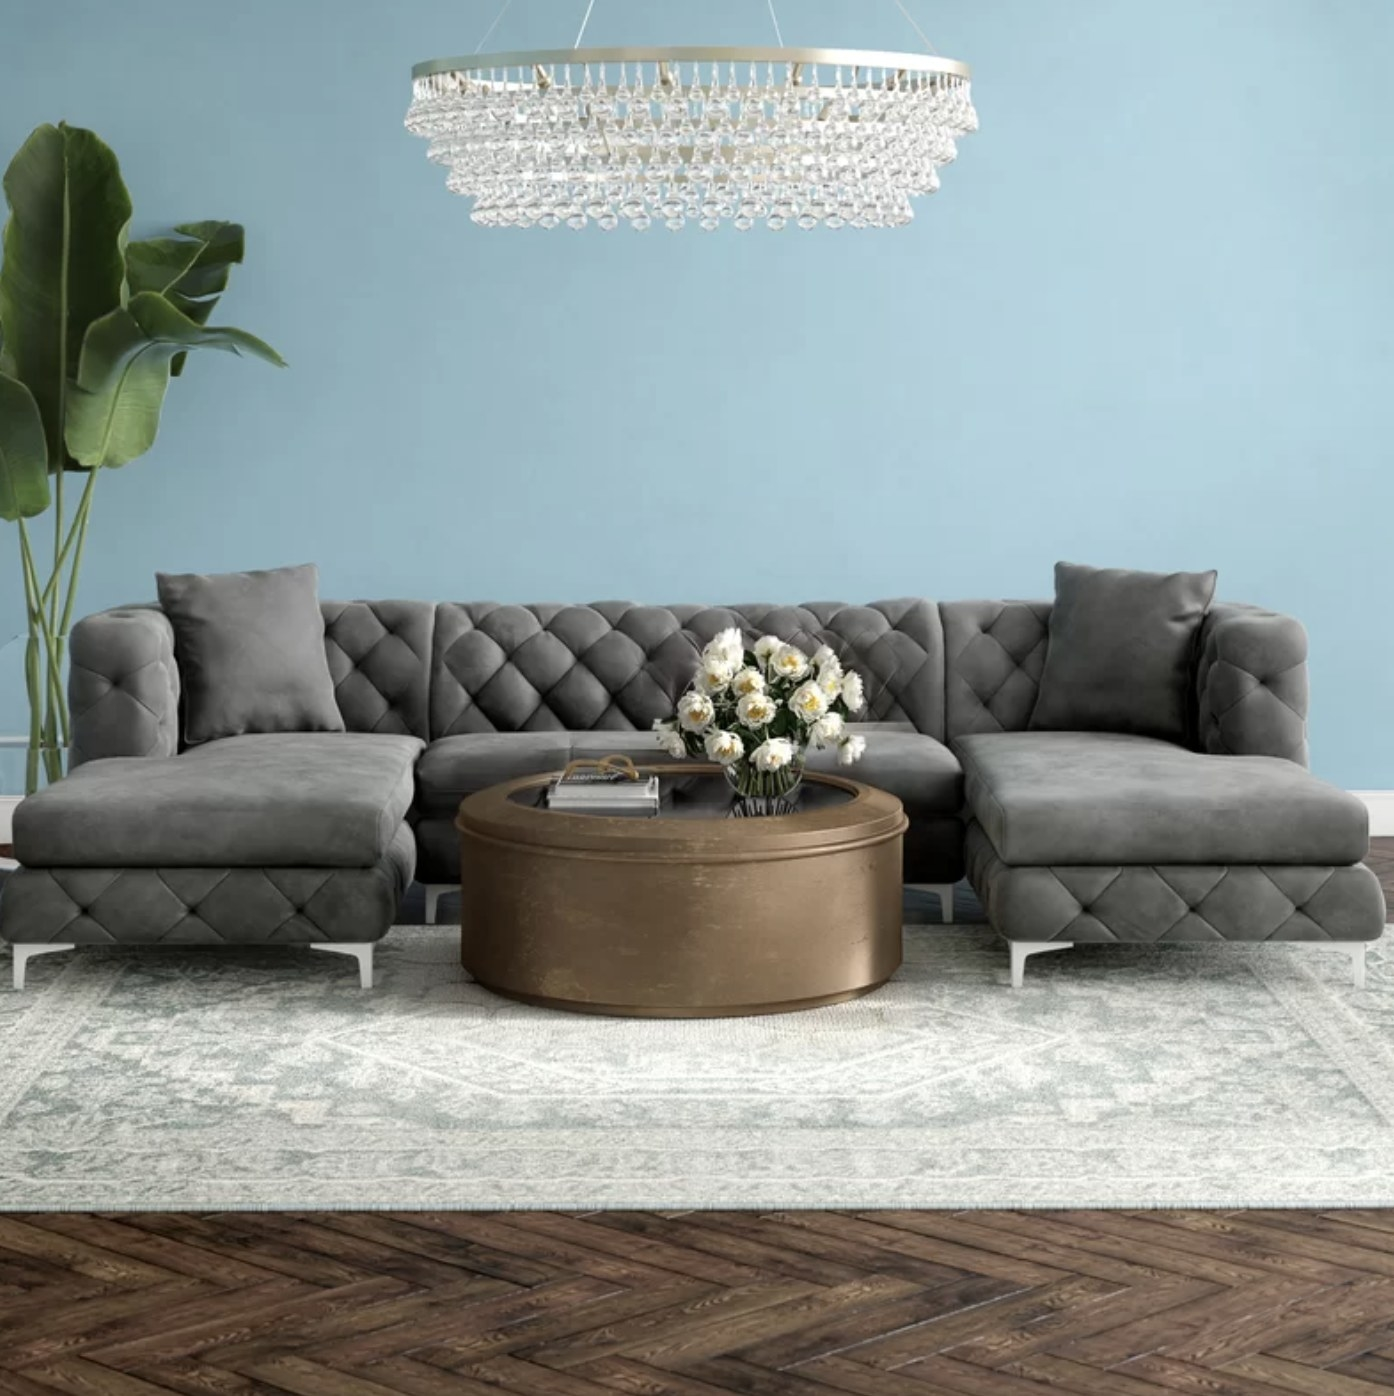 the couch in grey shown in a room with a coffee table and chandelier